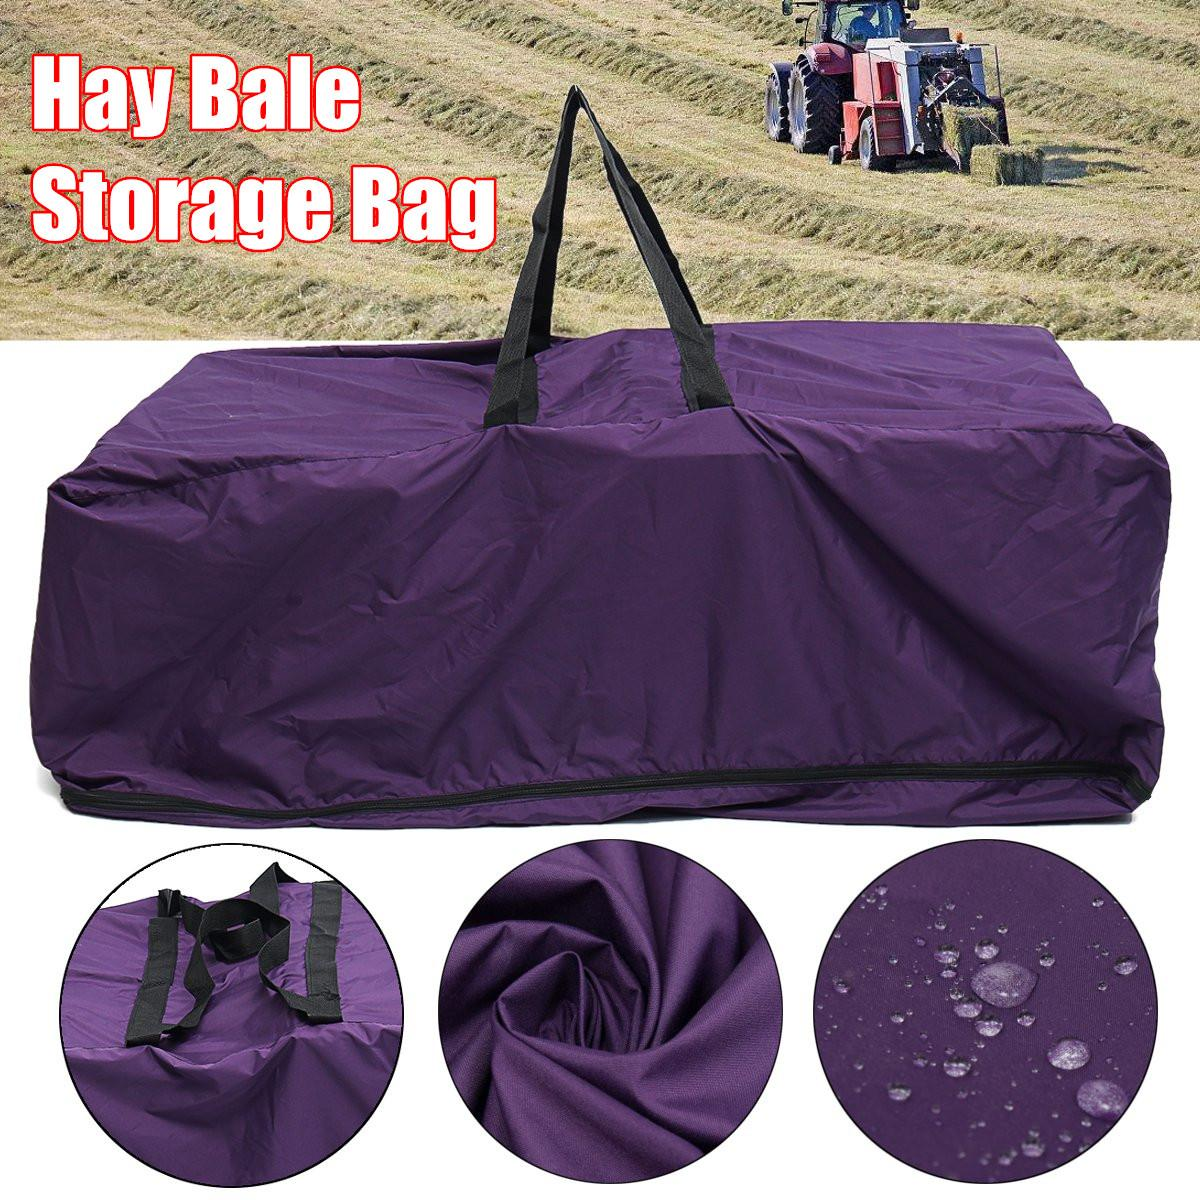 Hay Straw Bale Bag Storage Carry Waterproof Camping Horse Feeder Riding Gear